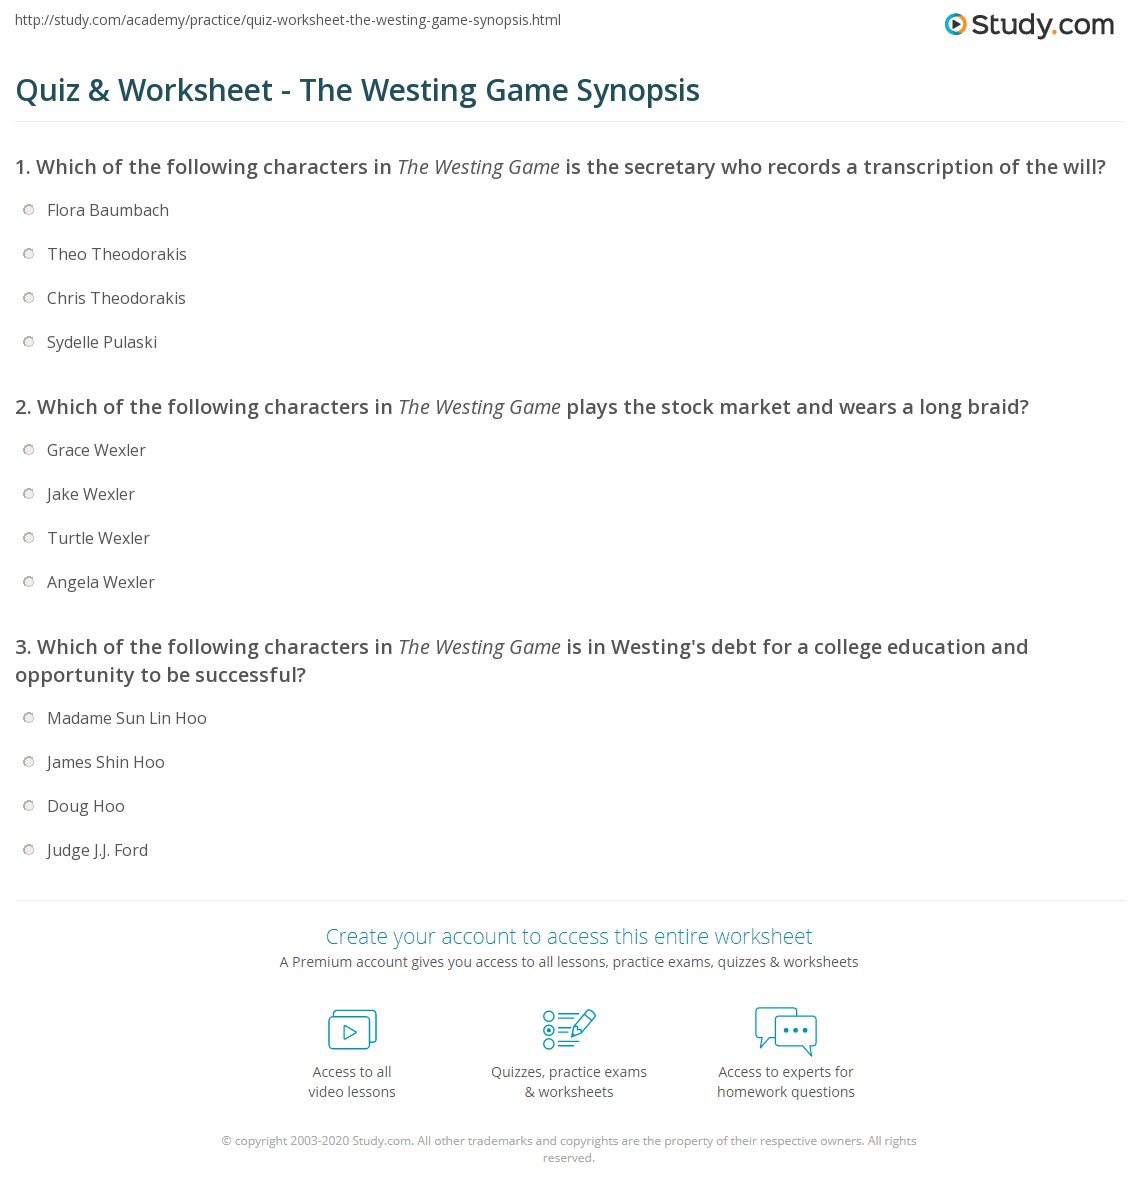 Quiz & Worksheet - The Westing Game Synopsis | Study.com